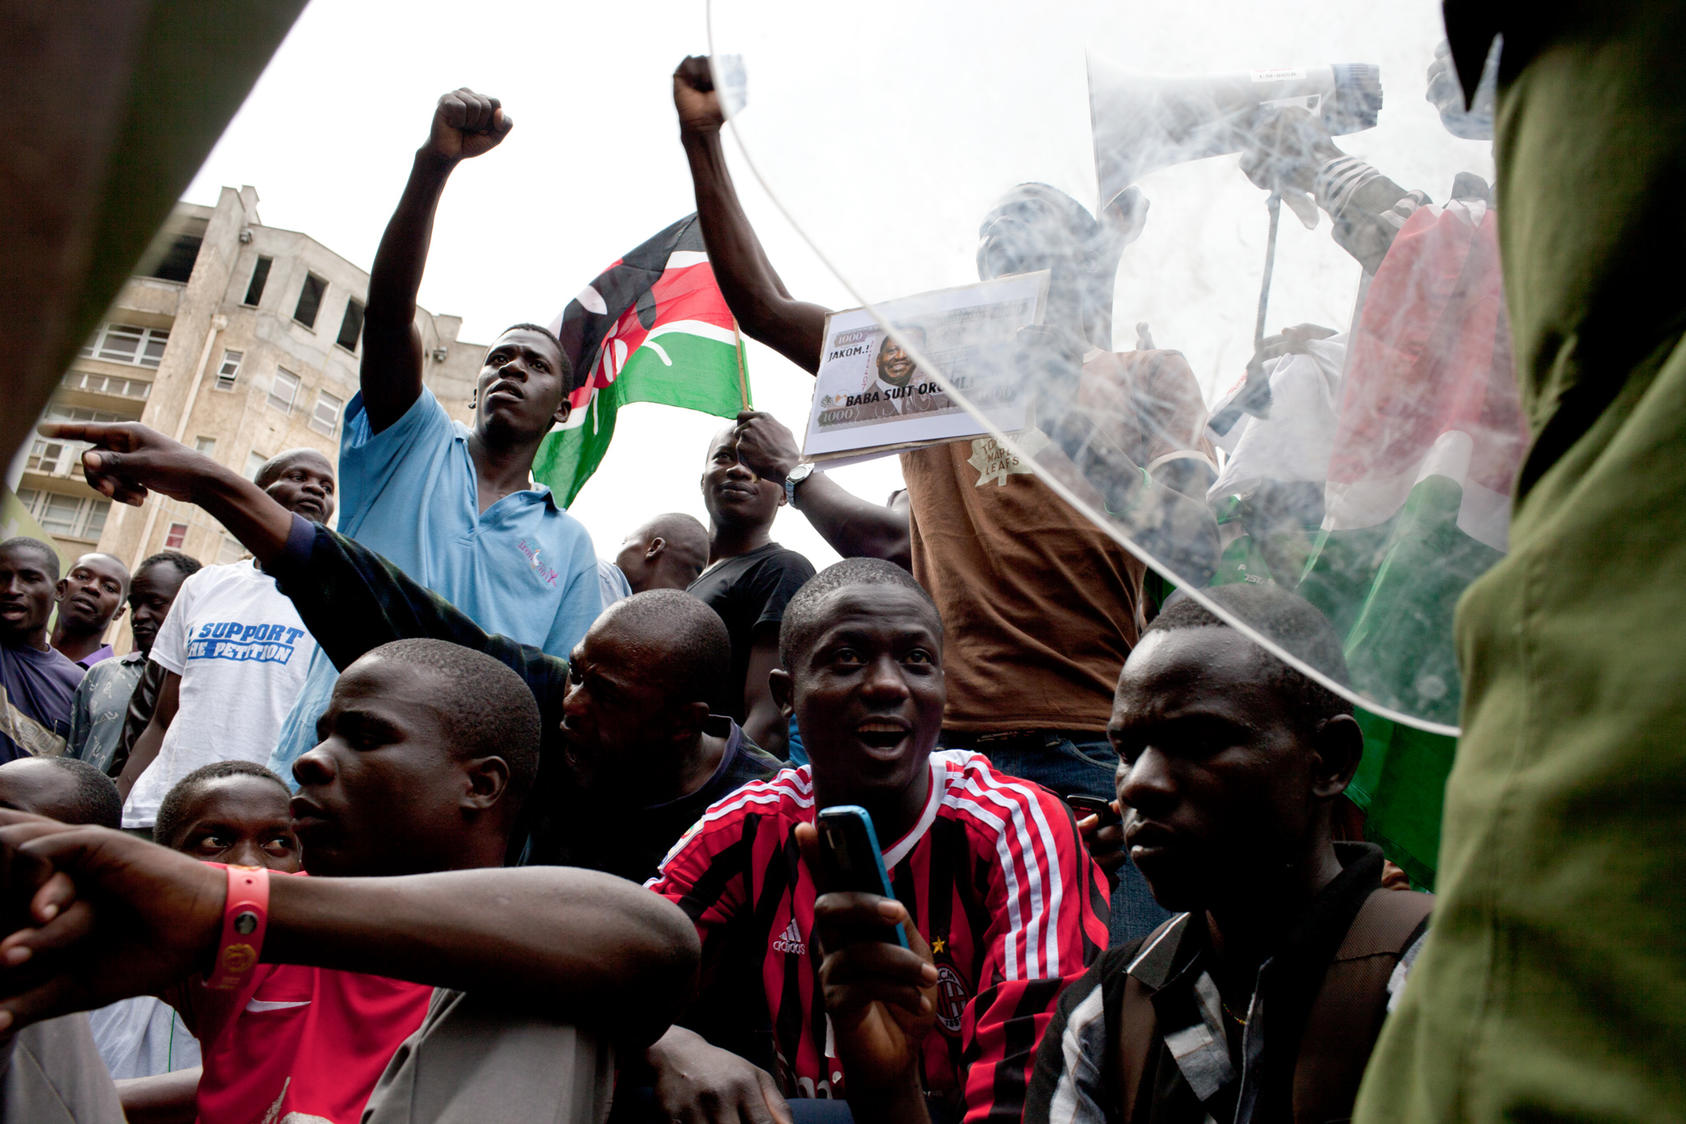 Supporters of Raila Odinga, Kenya's prime minister and presidential candidate, stage a protest outside the Supreme Court in Nairobi, March 30, 2013. The court on Saturday unanimously upheld the election victory of Uhuru Kenyatta as the country's president, dismissing allegations that the election had been rigged.